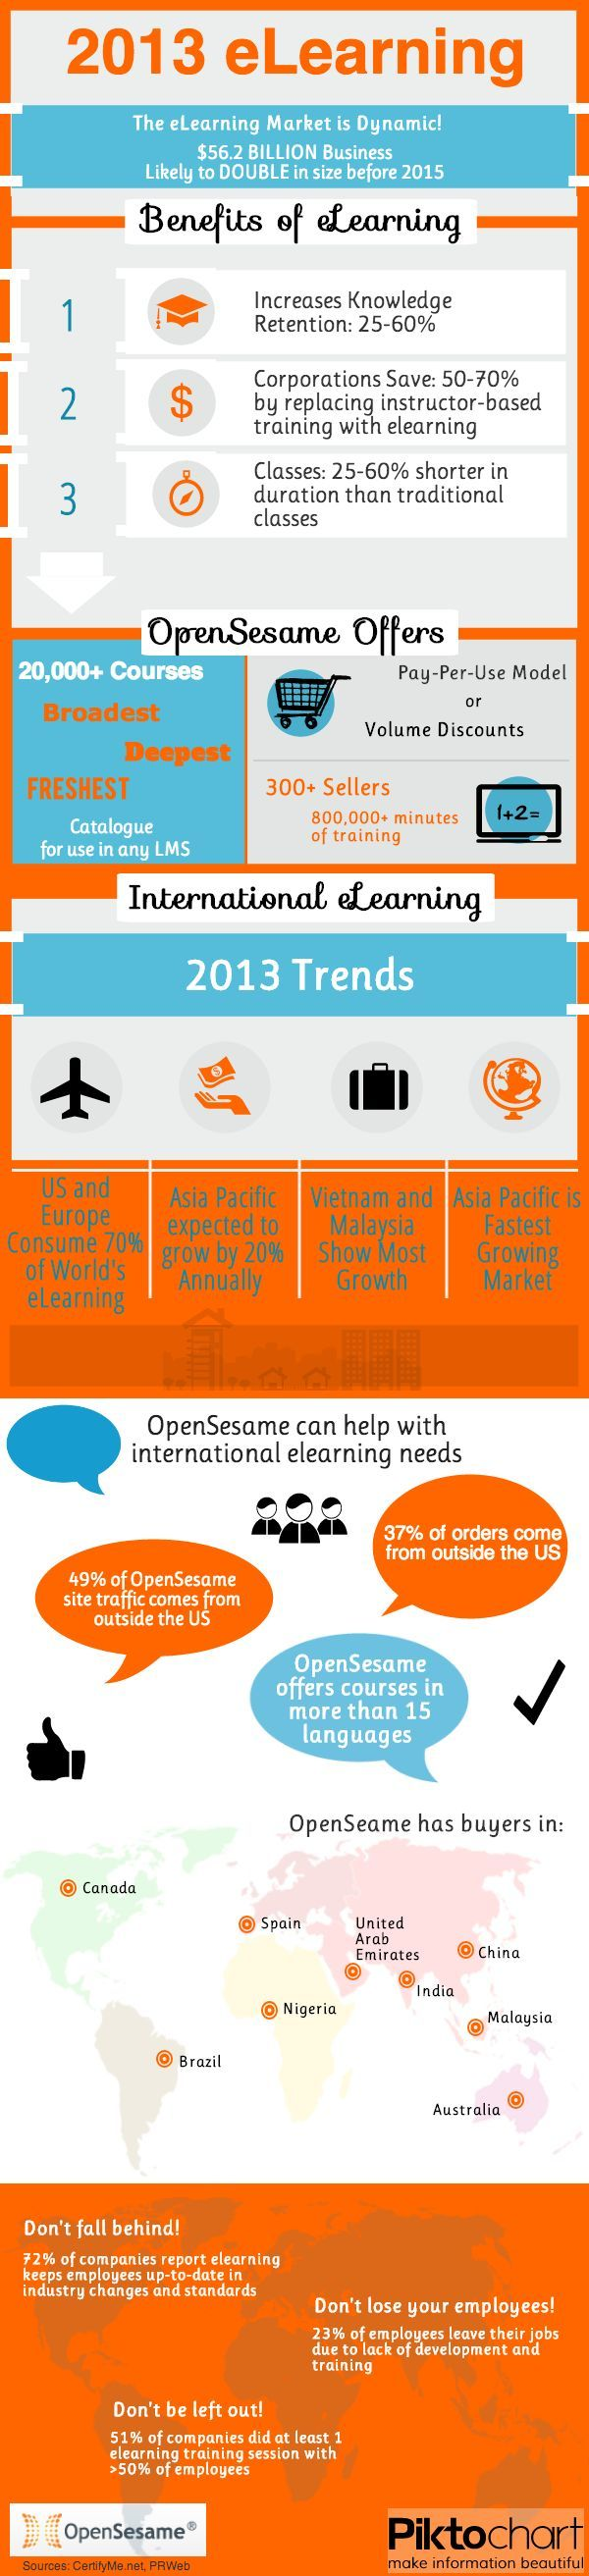 Elearning Industry Trends 2013 Infographic E Learning